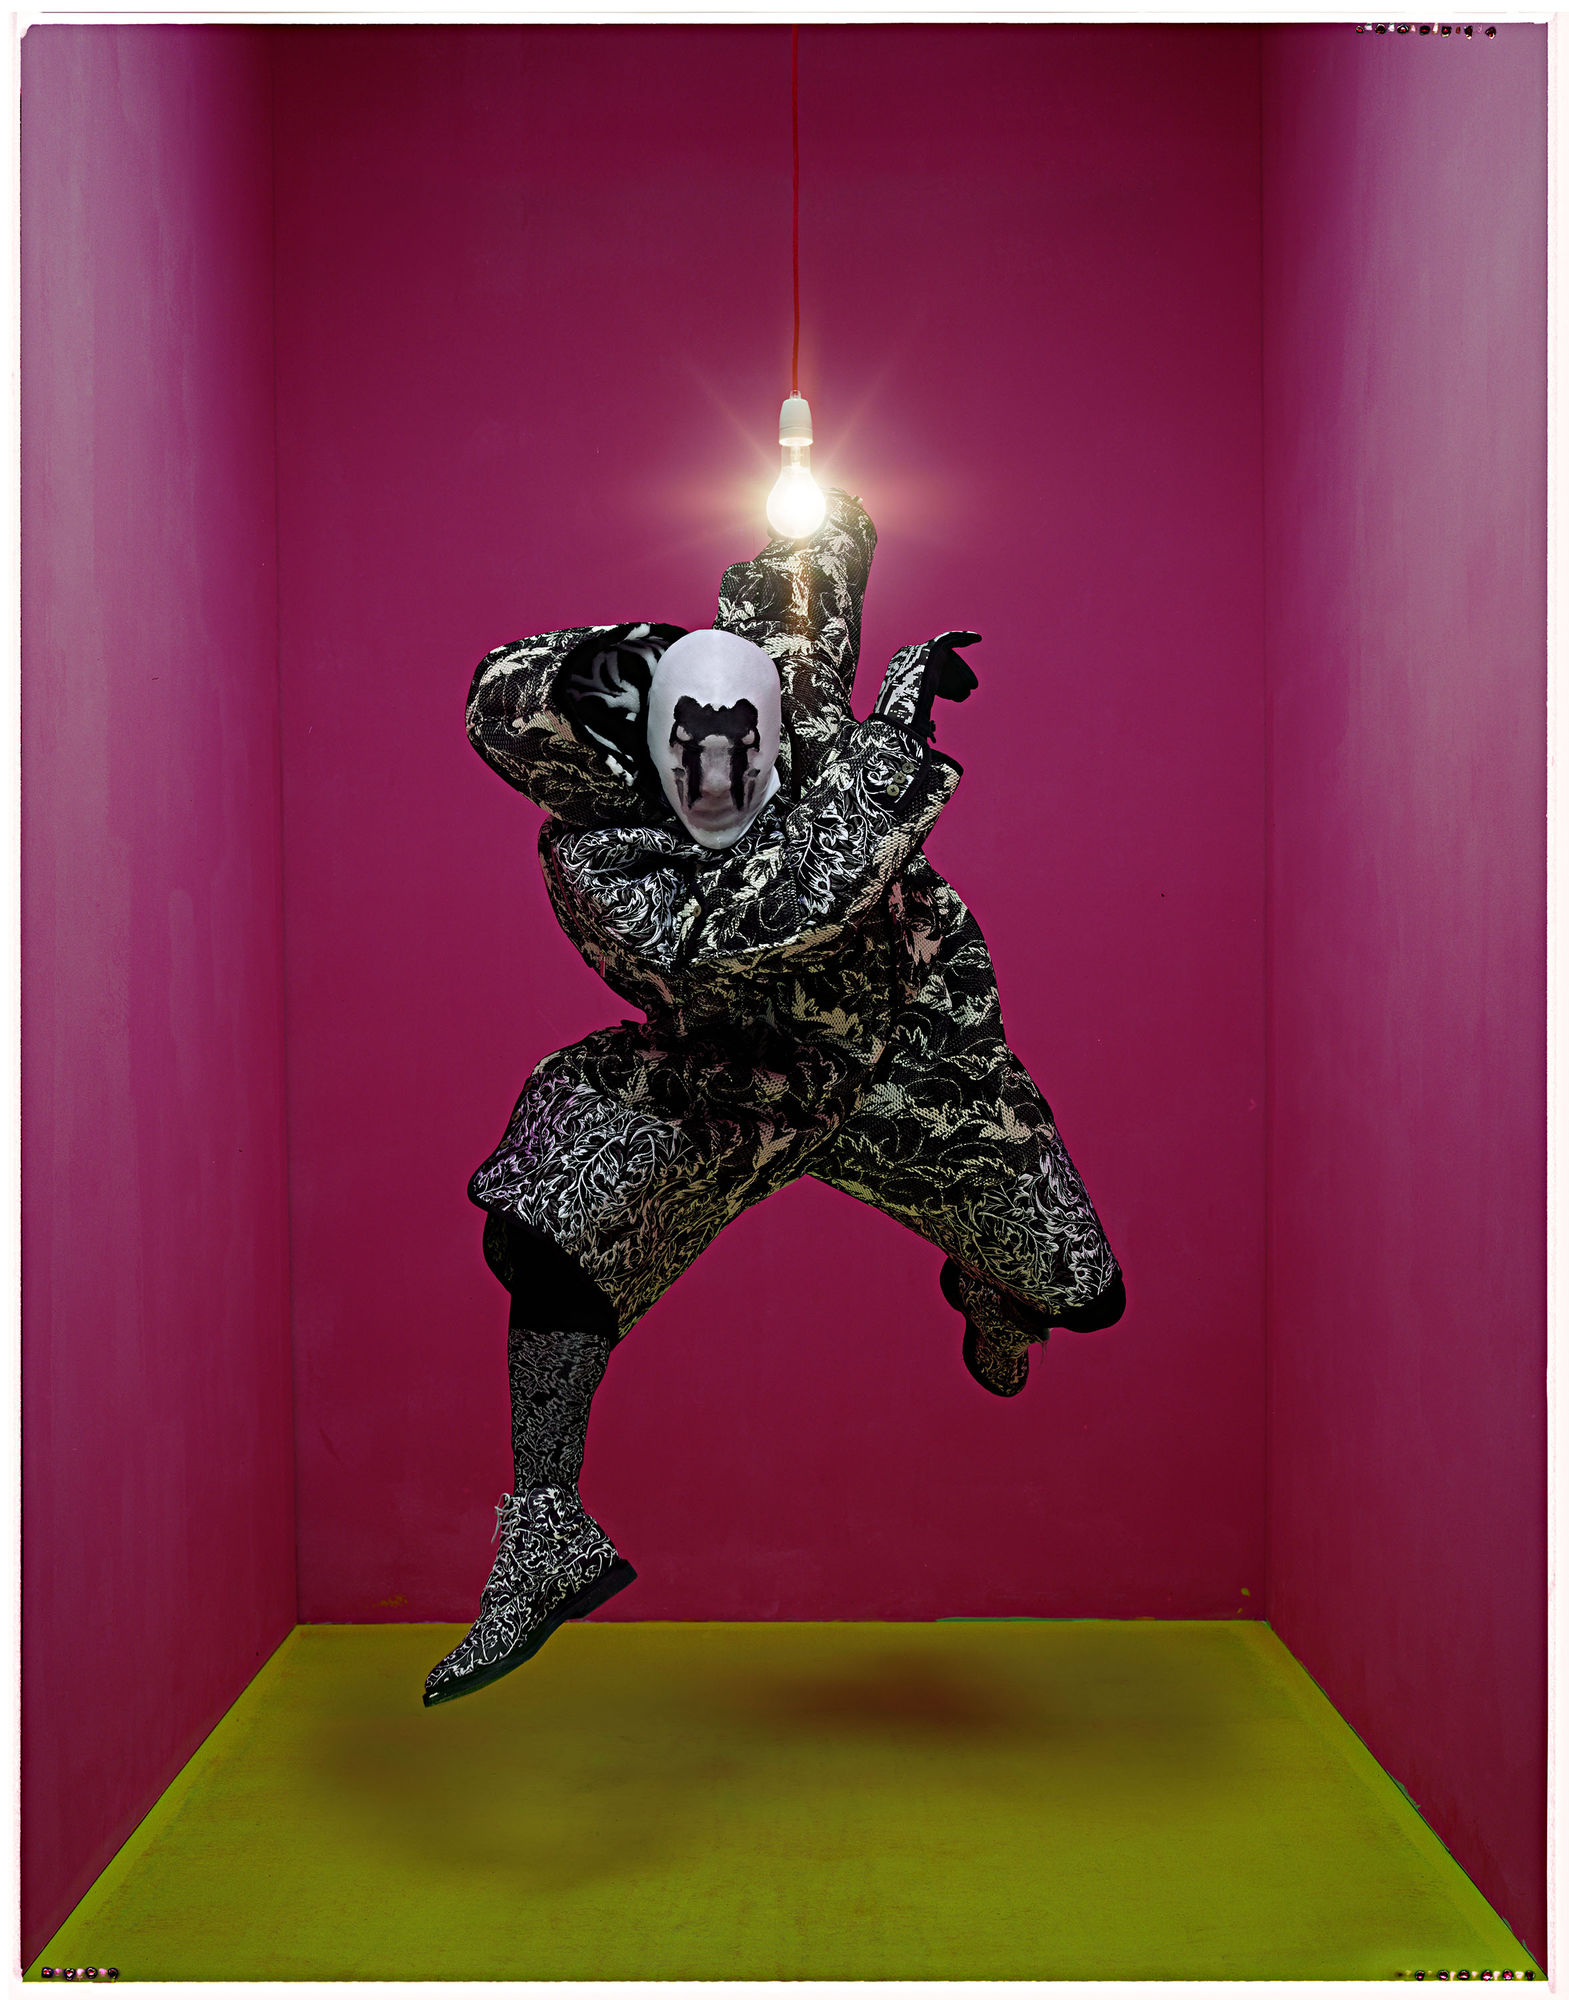 HOMMAGE TO FRANCIS BACON